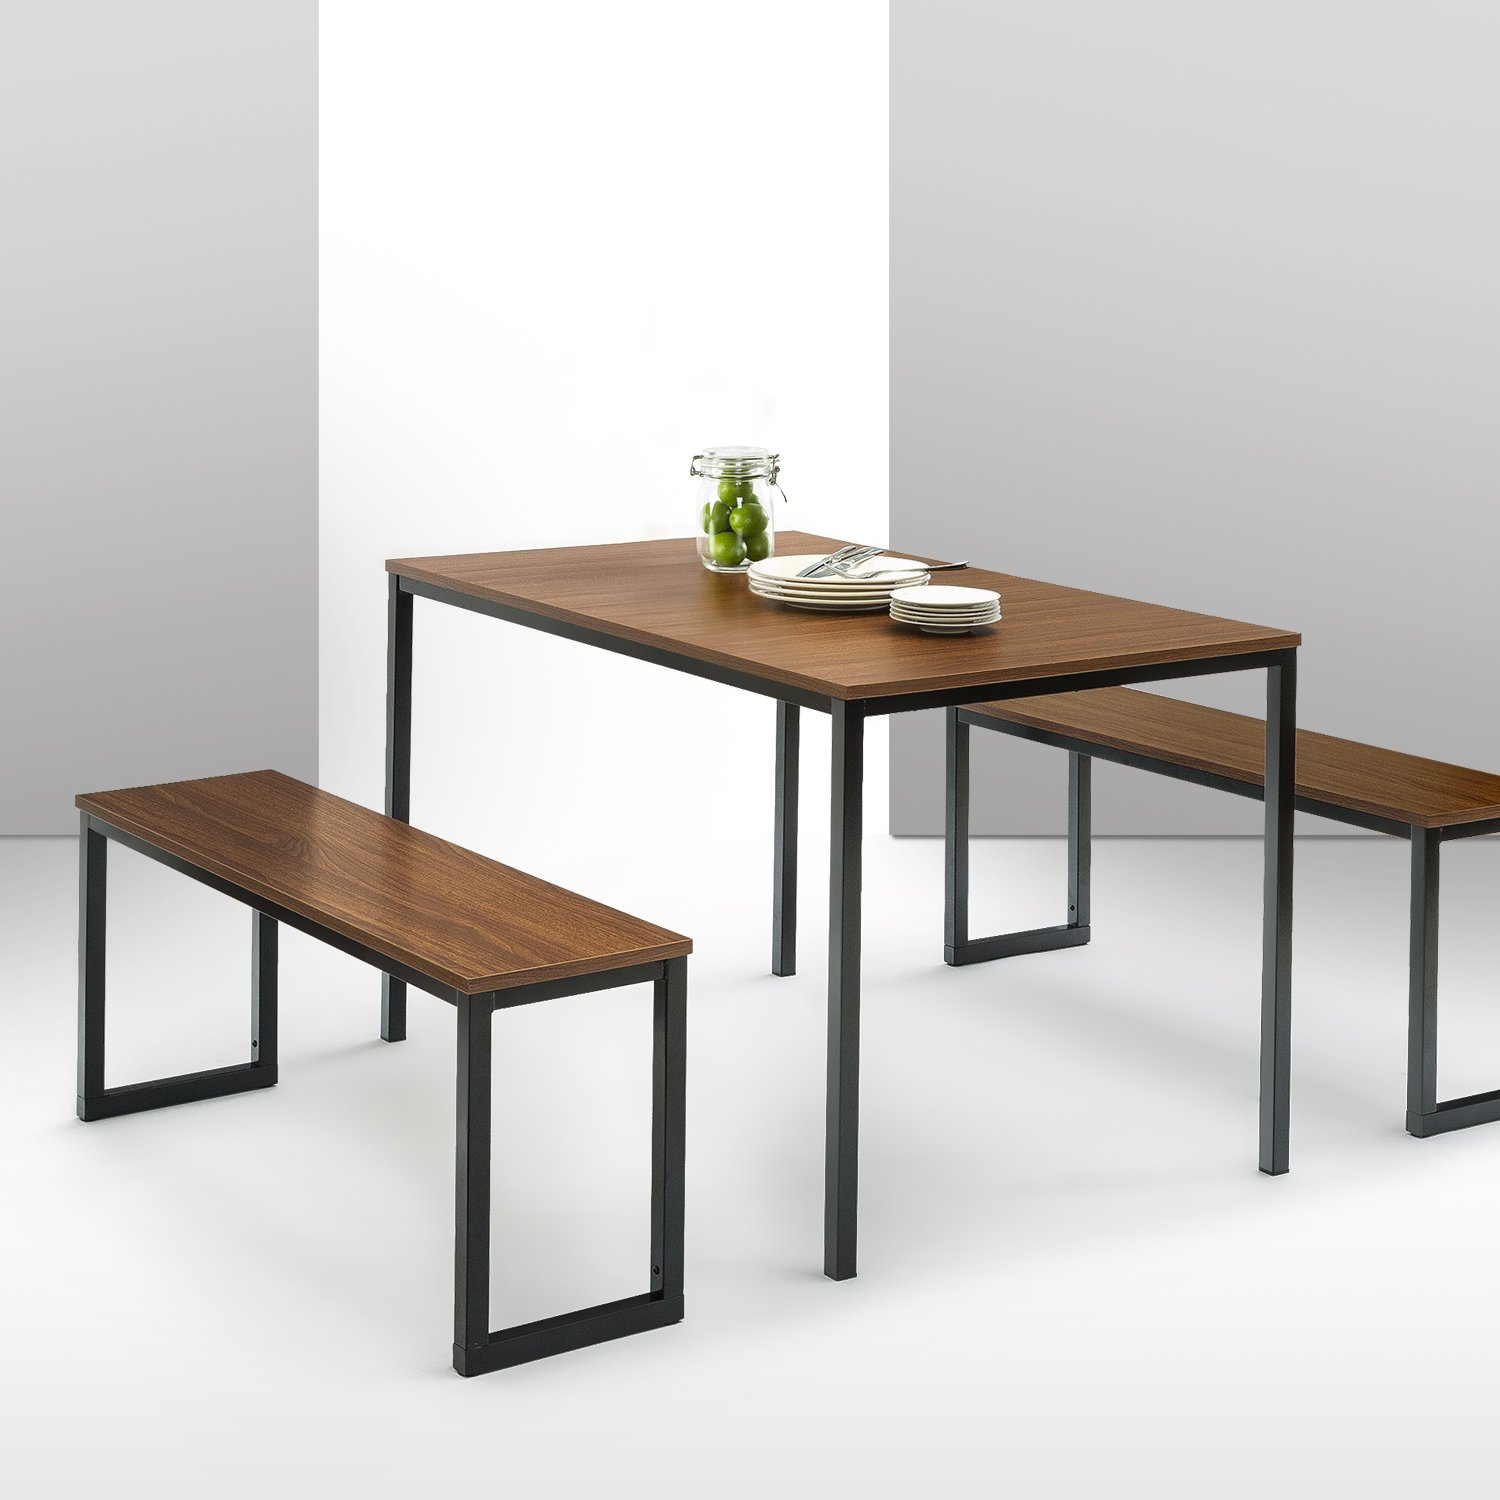 Zinus Louis Modern Studio Collection Soho Dining Table with Two Benches / 3 piece set, Brown by Zinus